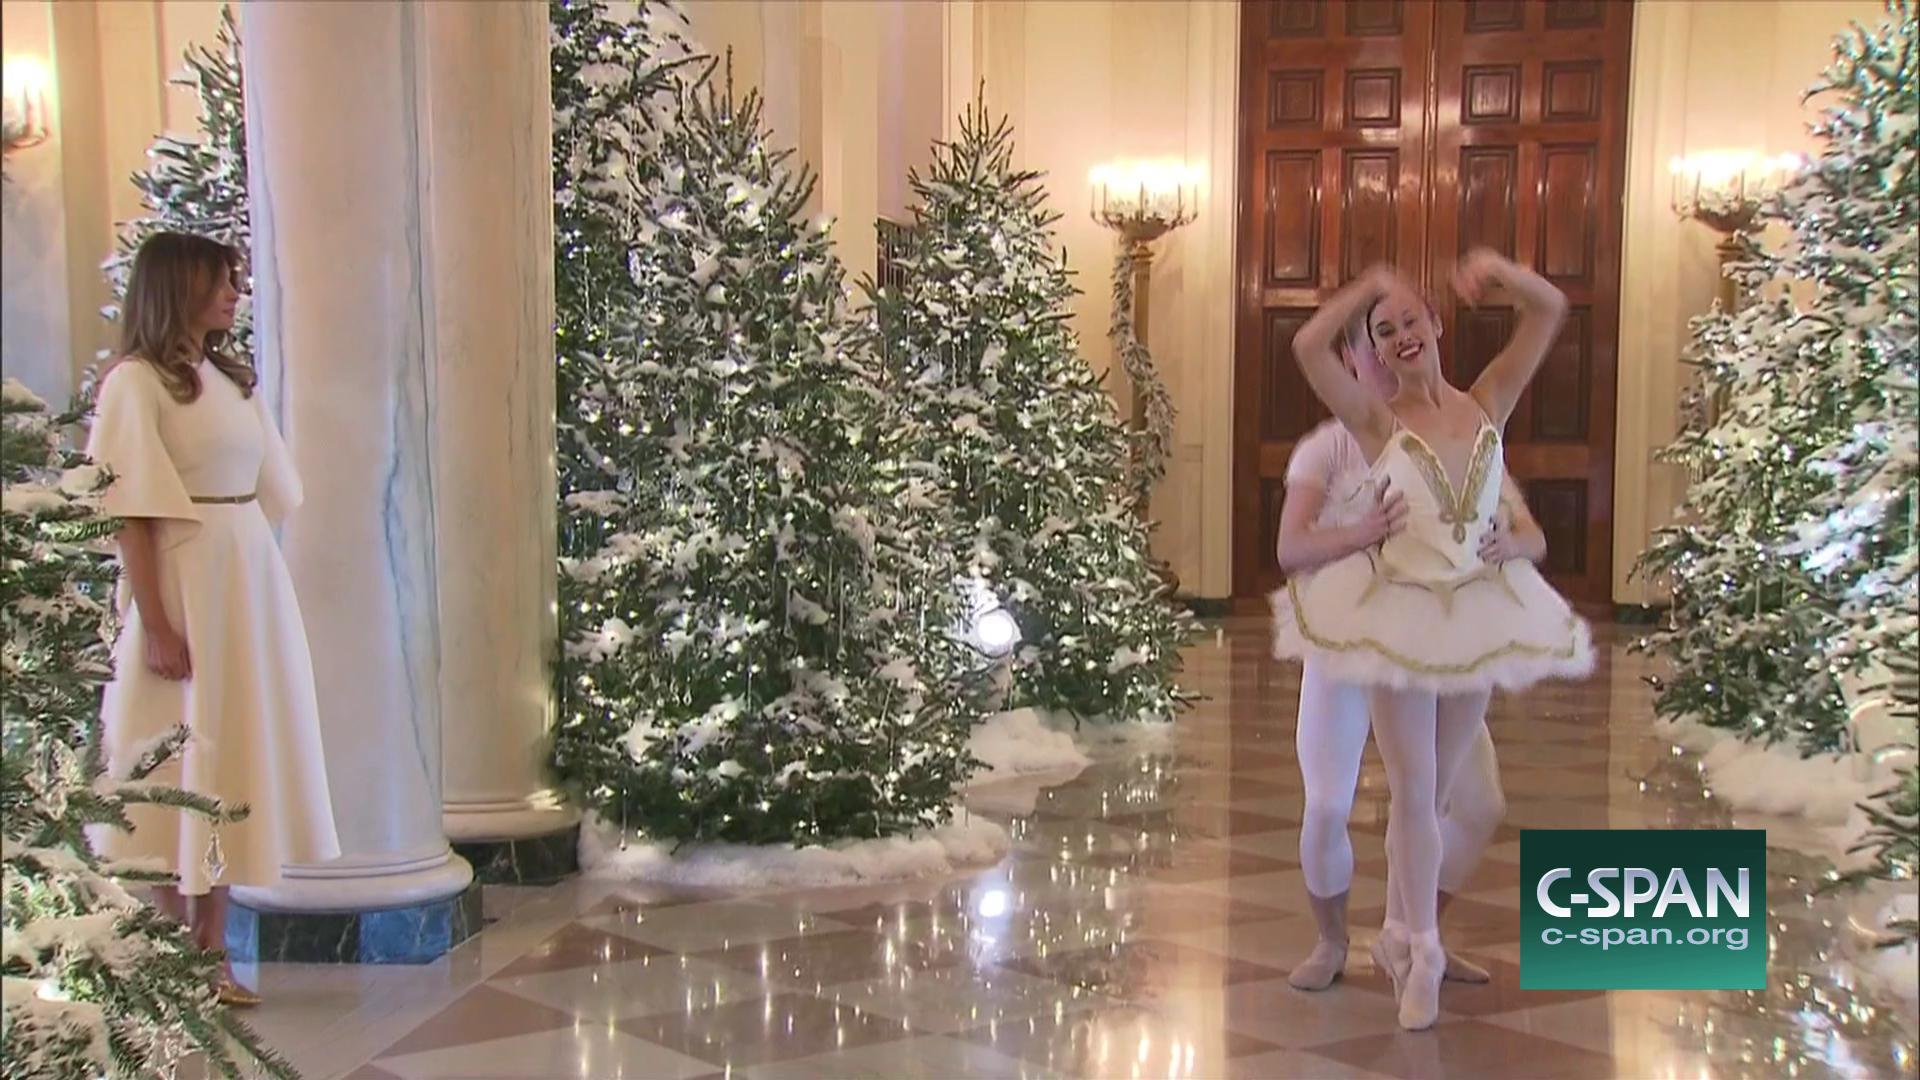 lady meets children making white house holiday decorations nov 27 2017 - The White House Christmas Decorations 2017